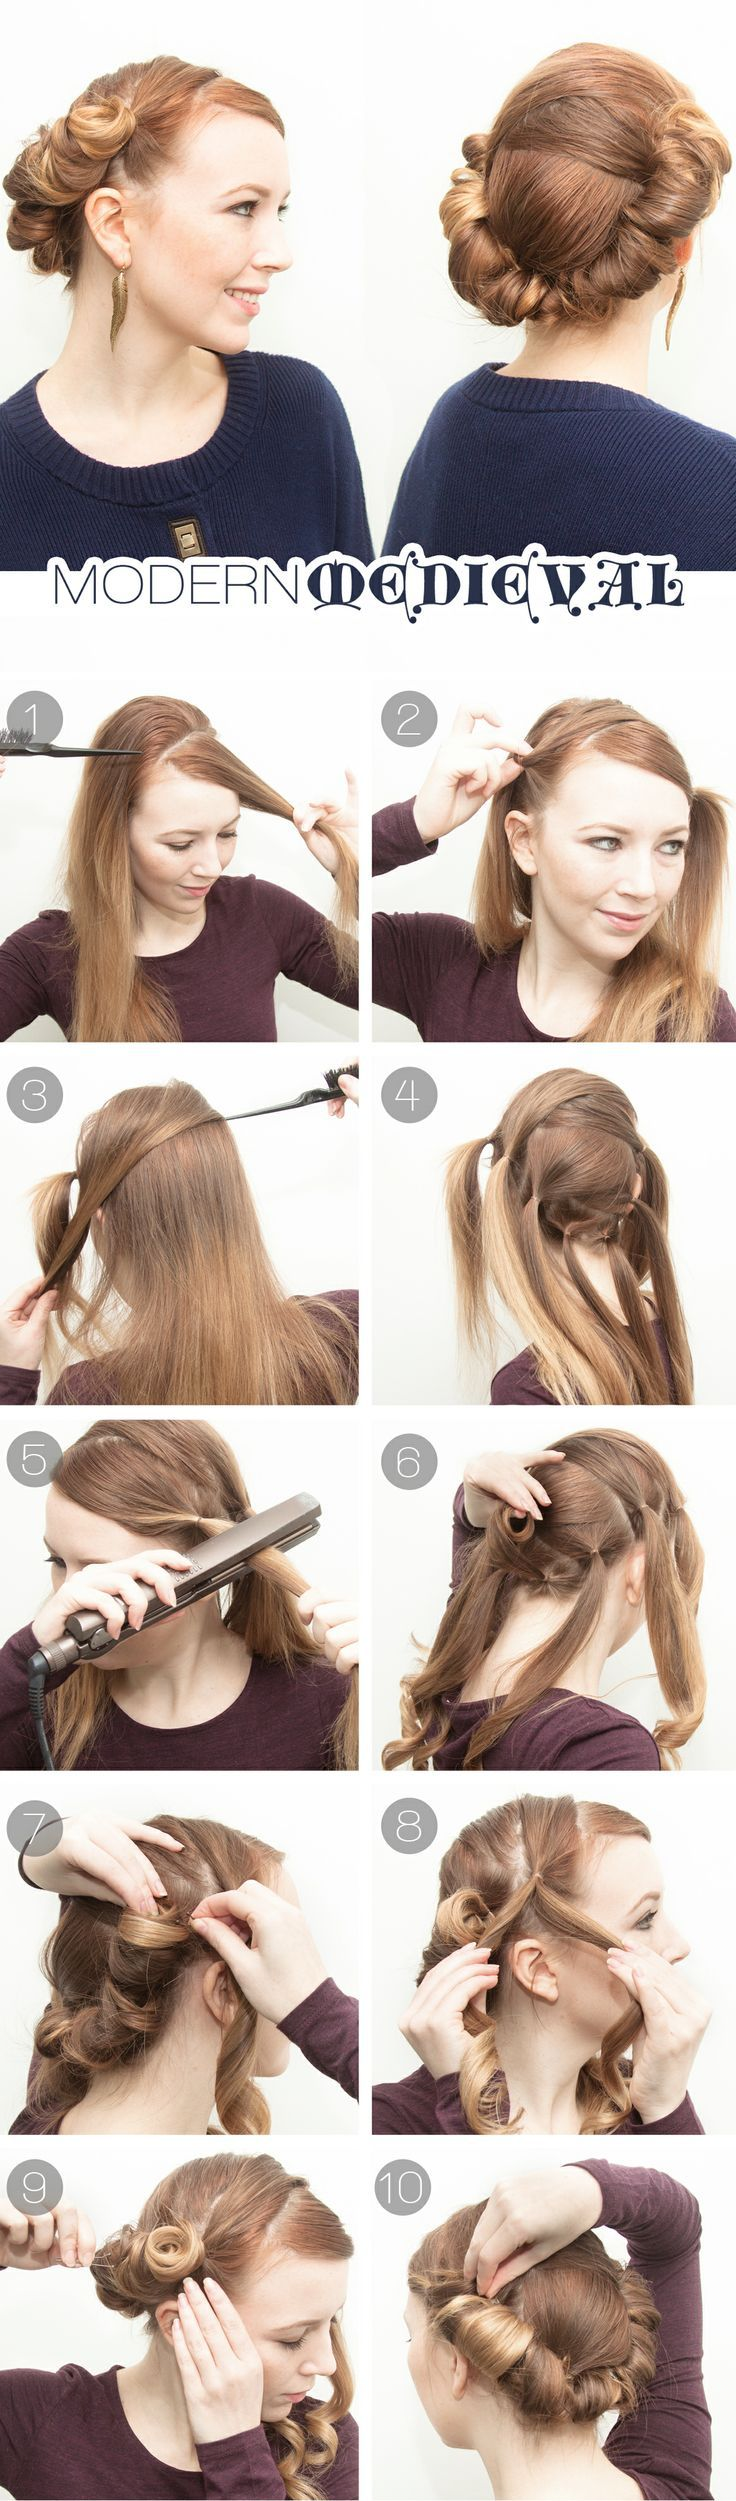 Easy Hairstyles On The Go 194 Best Images About Easy Hairstyles On Pinterest Nice Hair